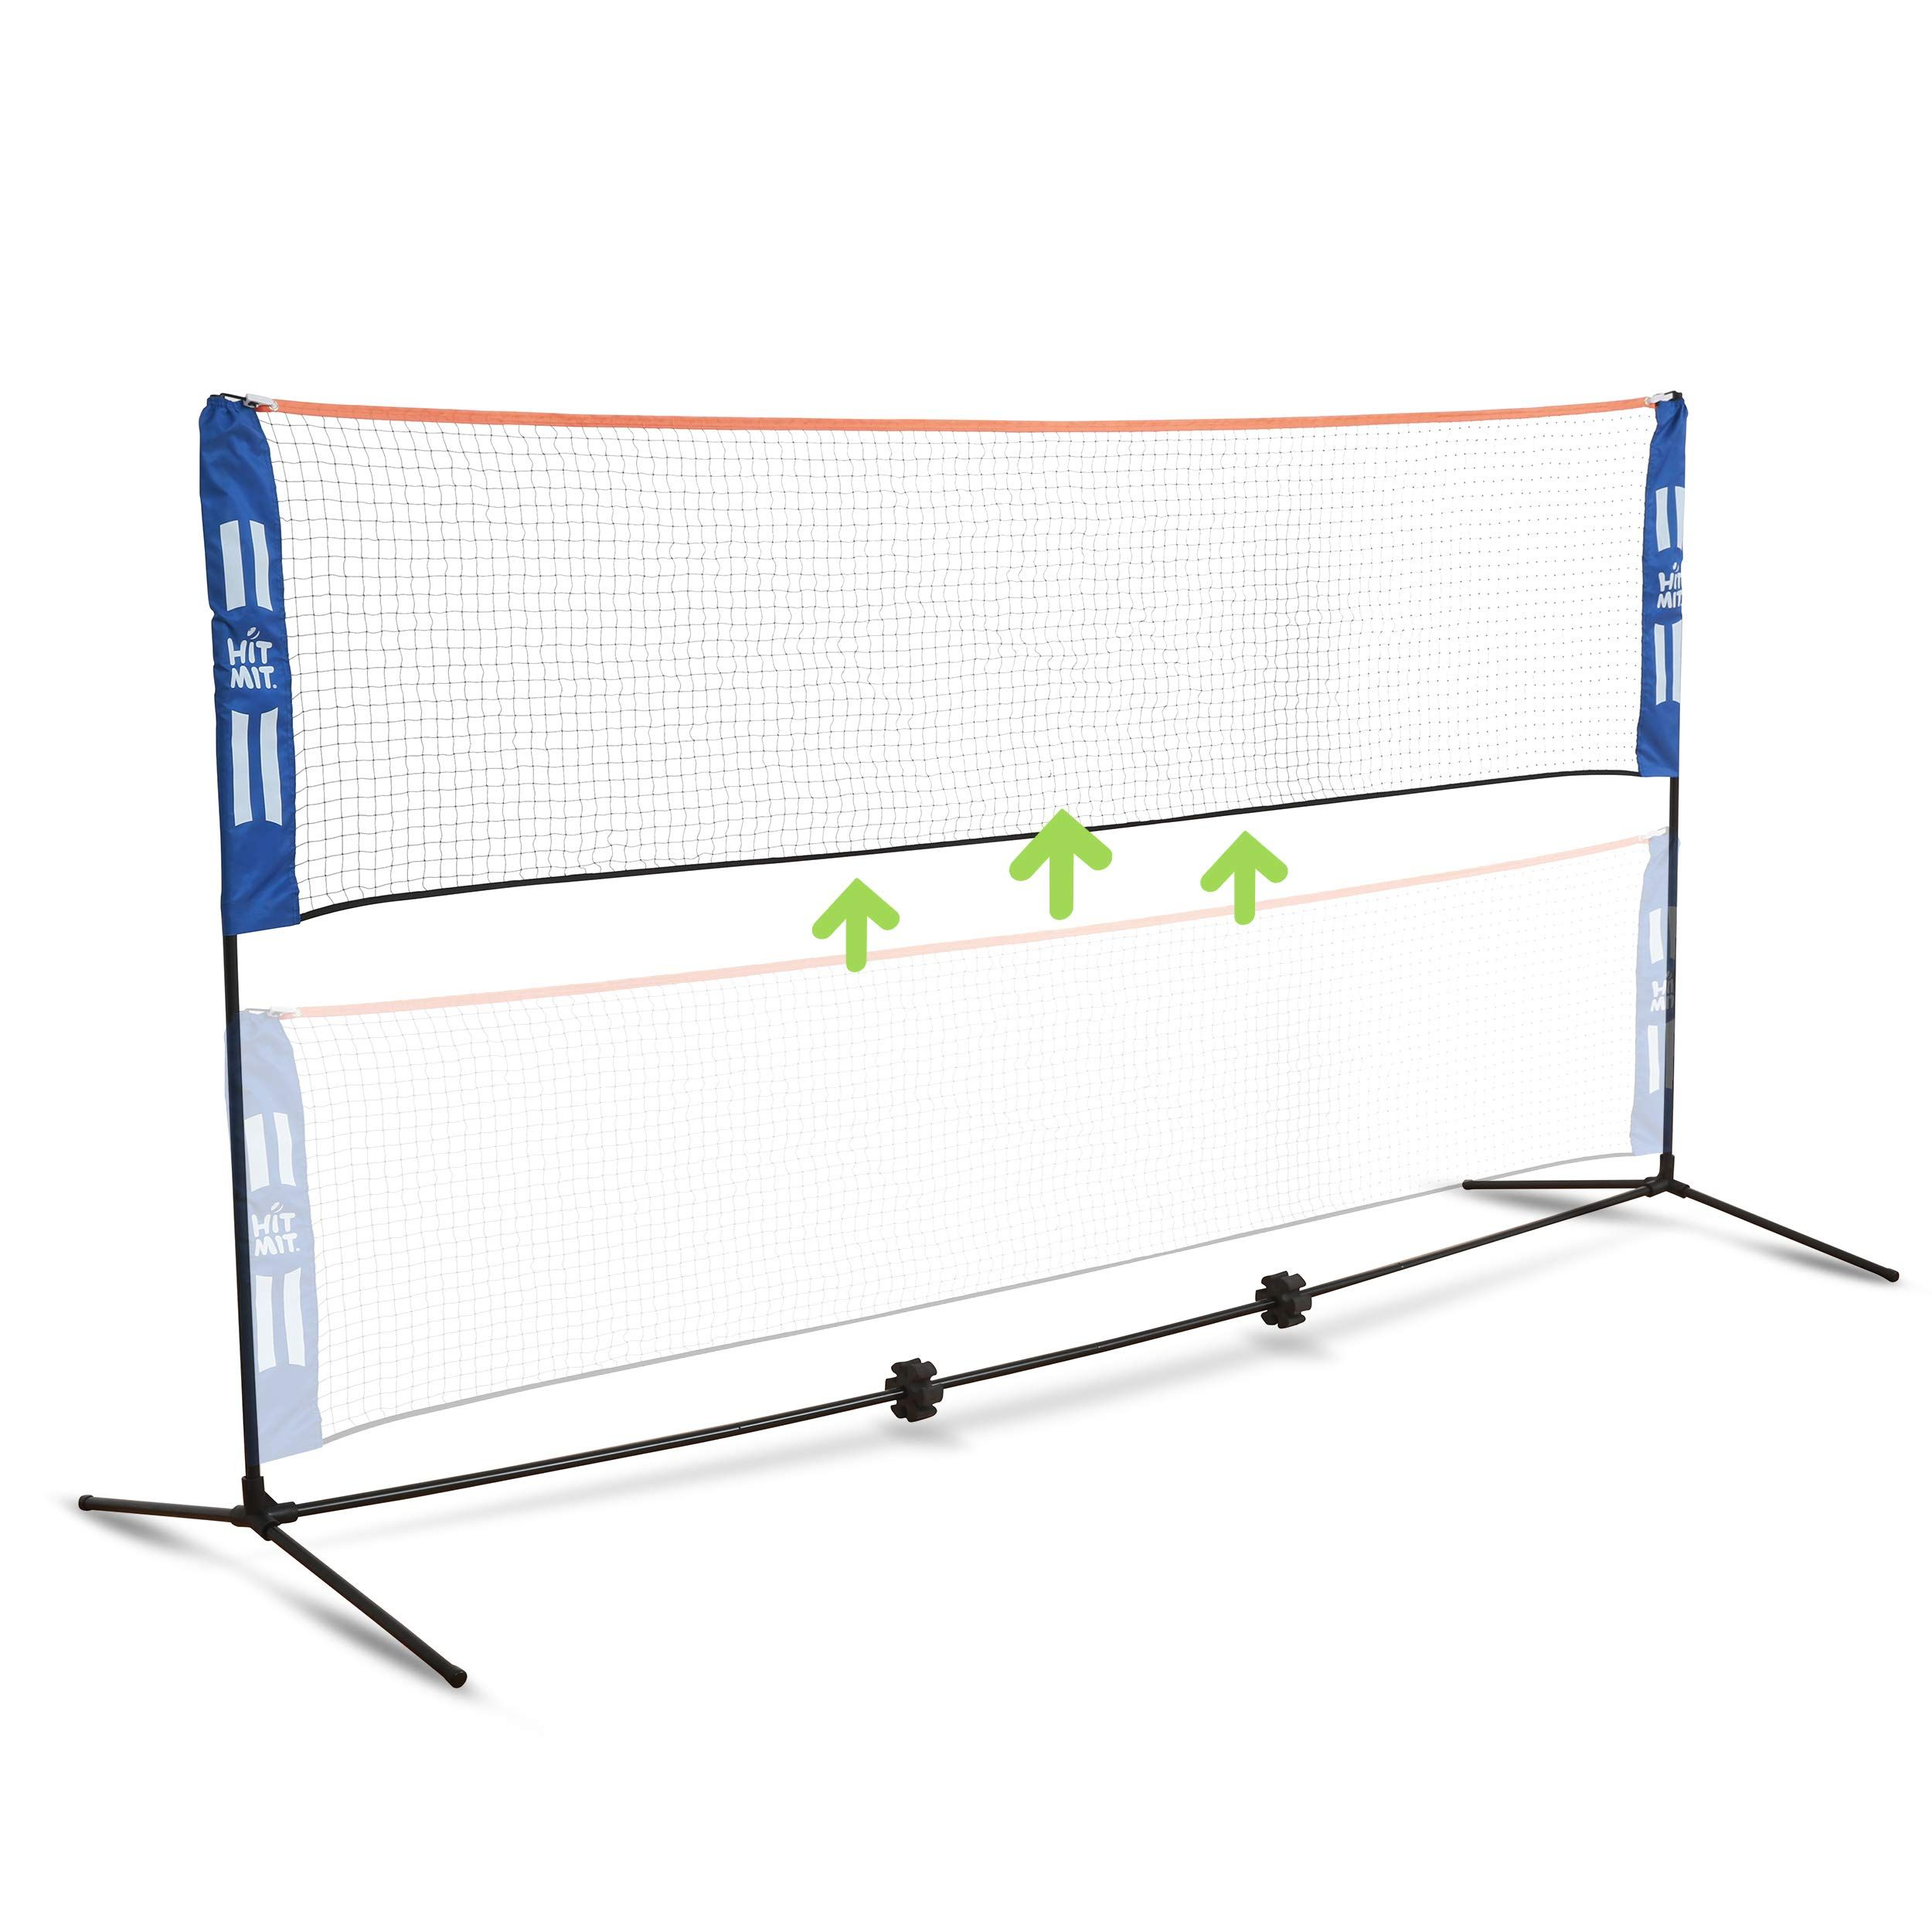 Hit Multi Sport Adjustable Indoor Outdoor In 2020 Lawn Tennis Soccer Tennis Kids Volleyball